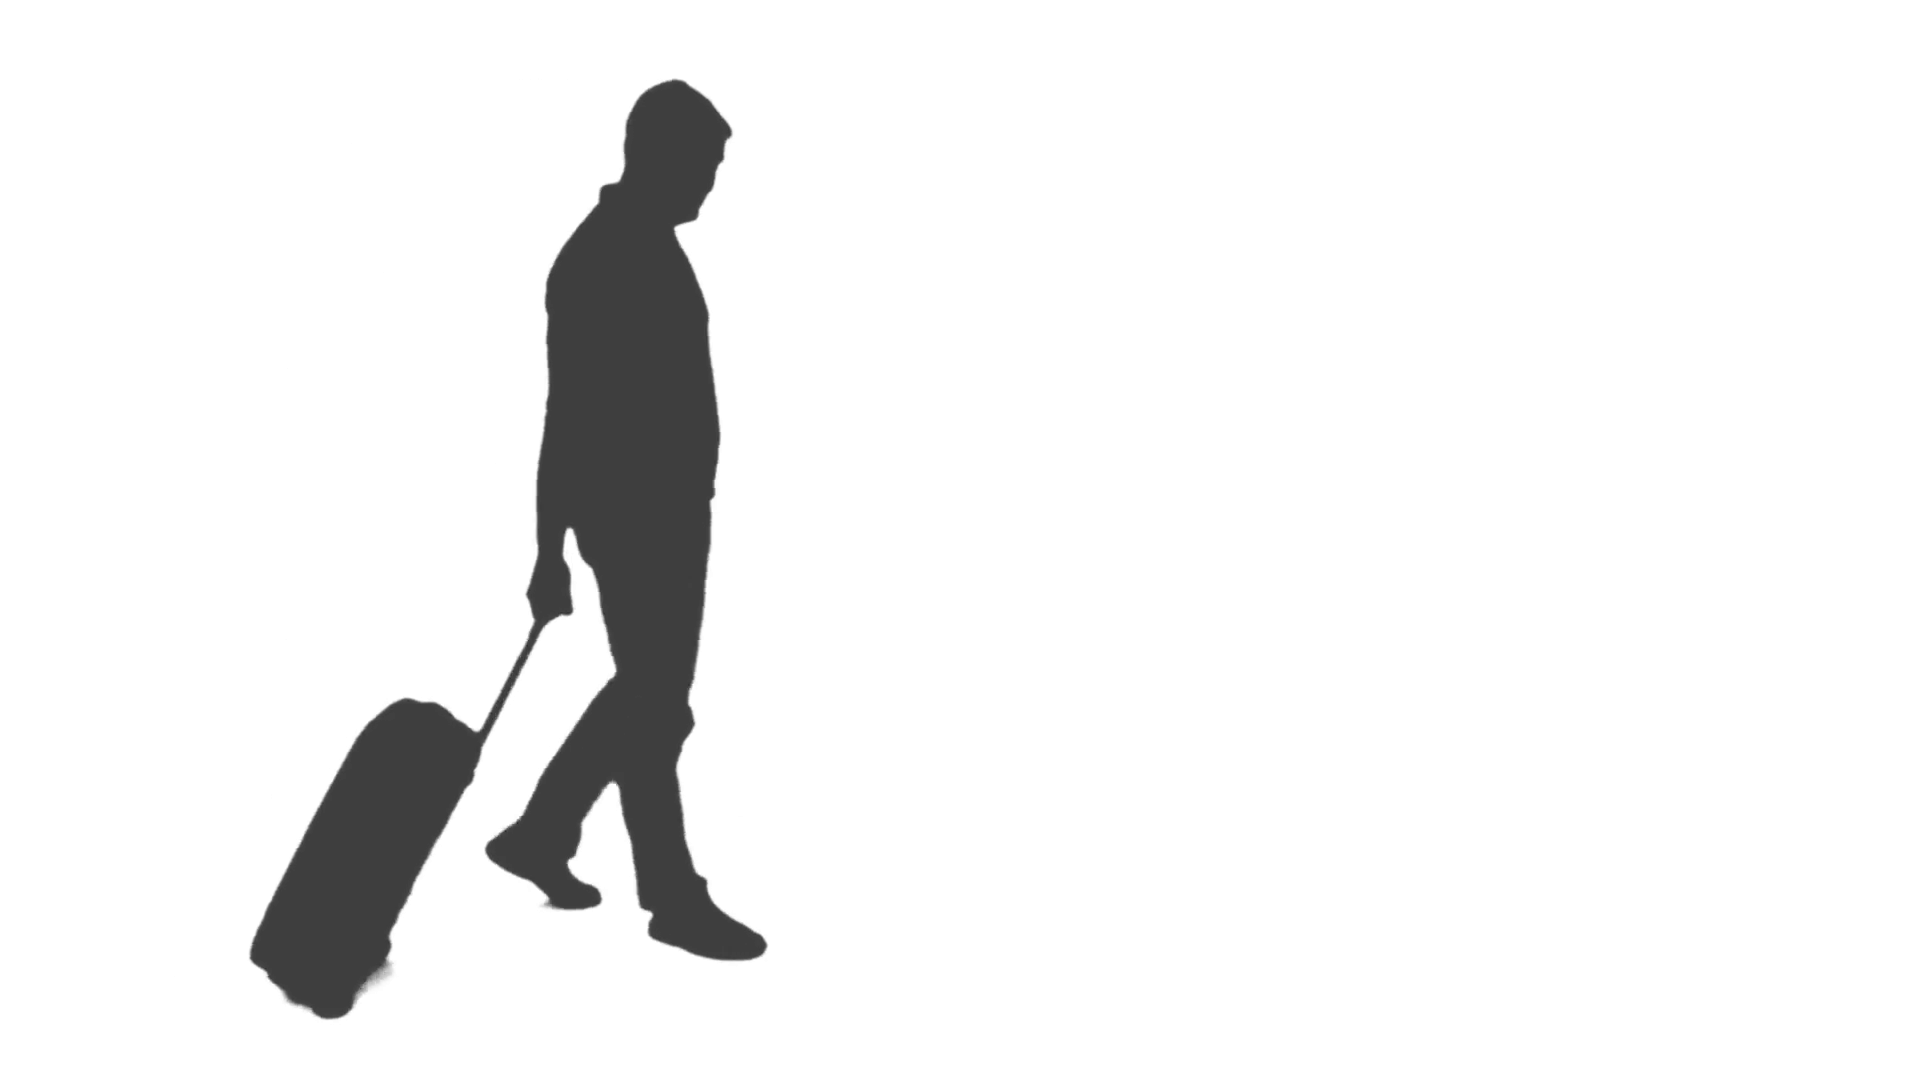 1920x1080 Silhouette Of A Man Walking With A Suitcase And Waiting